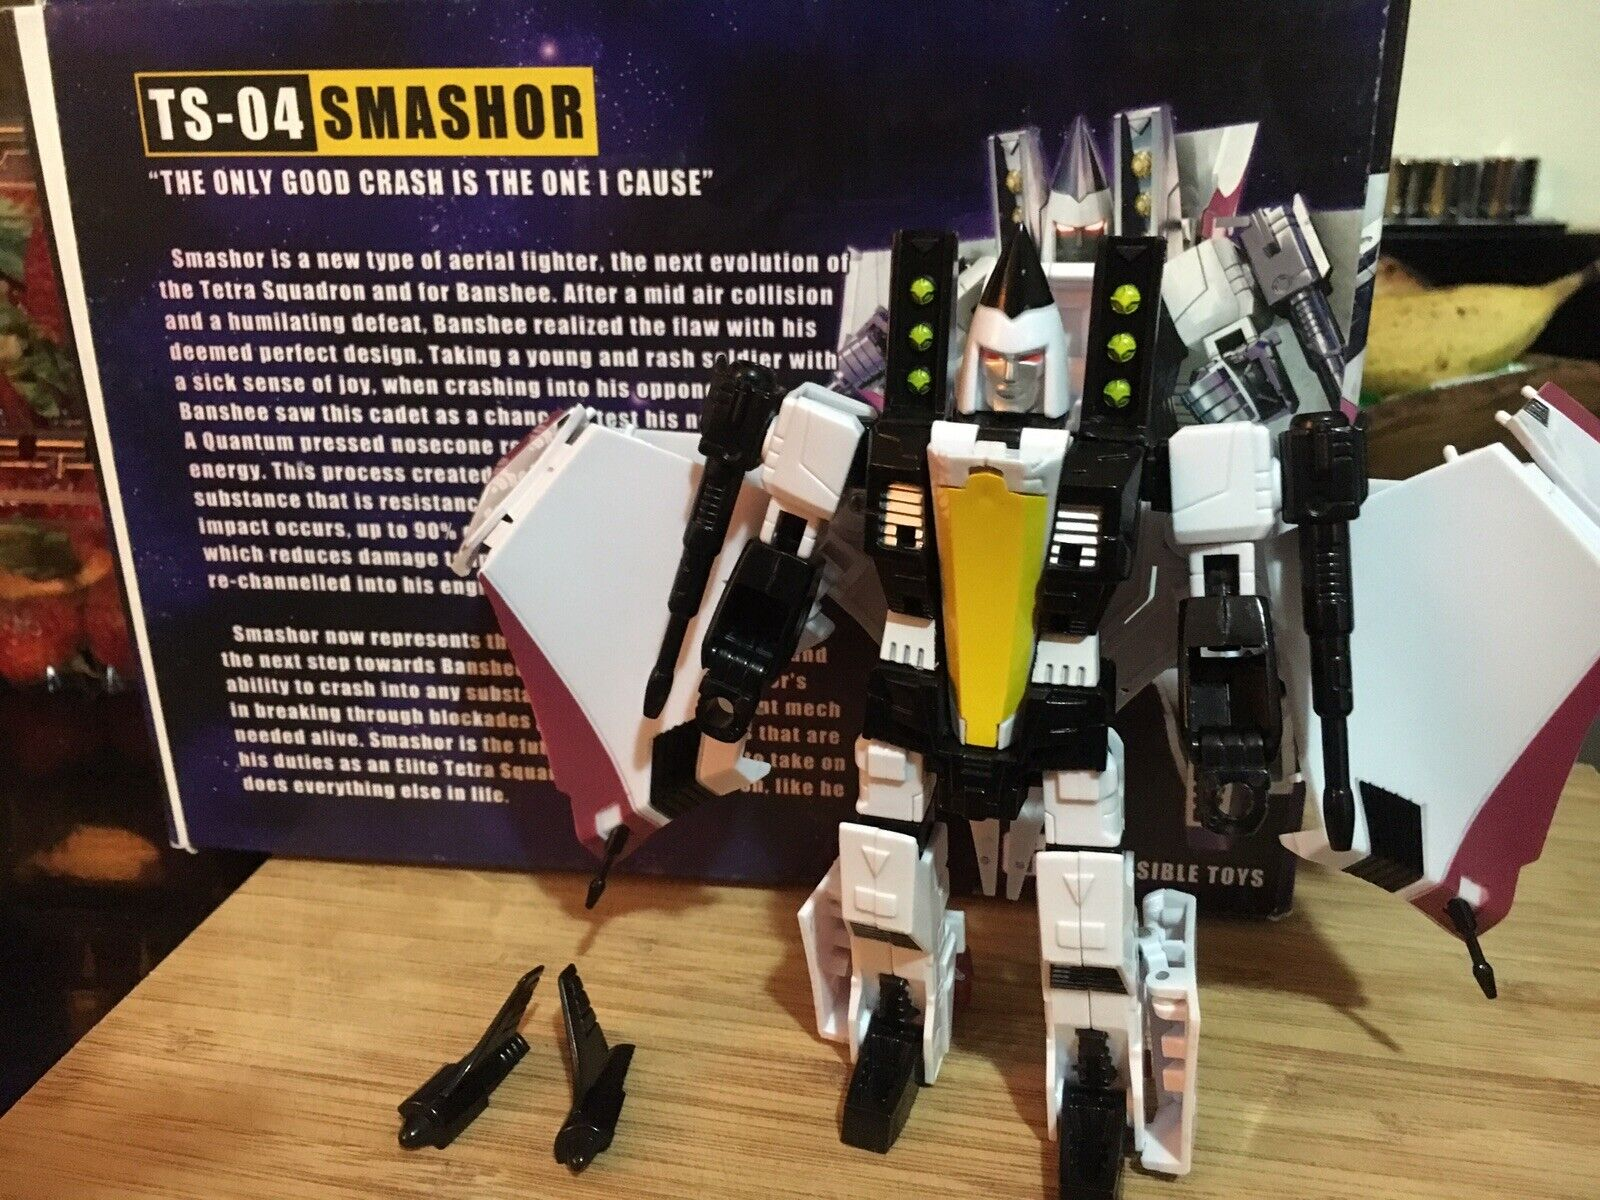 Transformers Impossible Toys TS-04 Smashor (Ramjet) 100% Complete